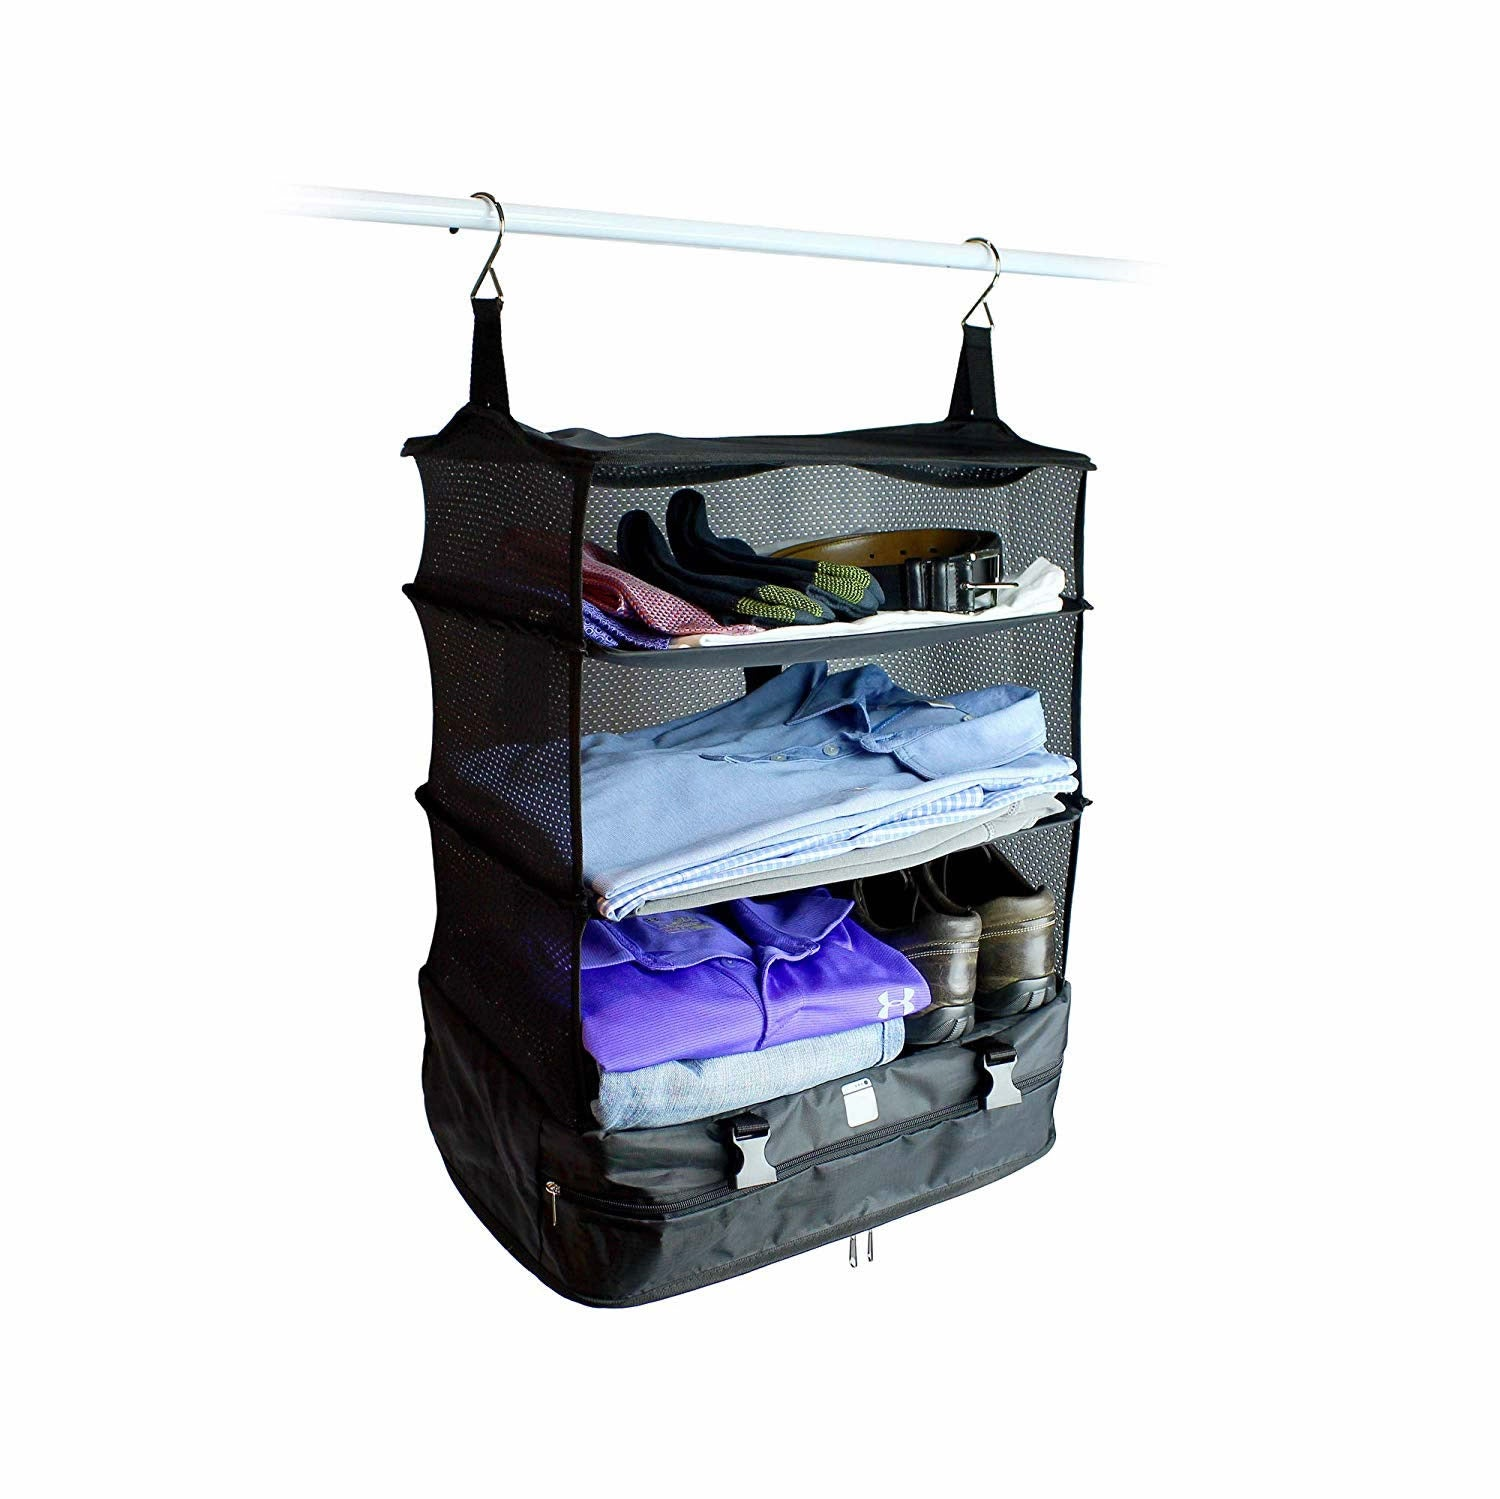 shopify-Carry On Closet Baggage Organizer-3